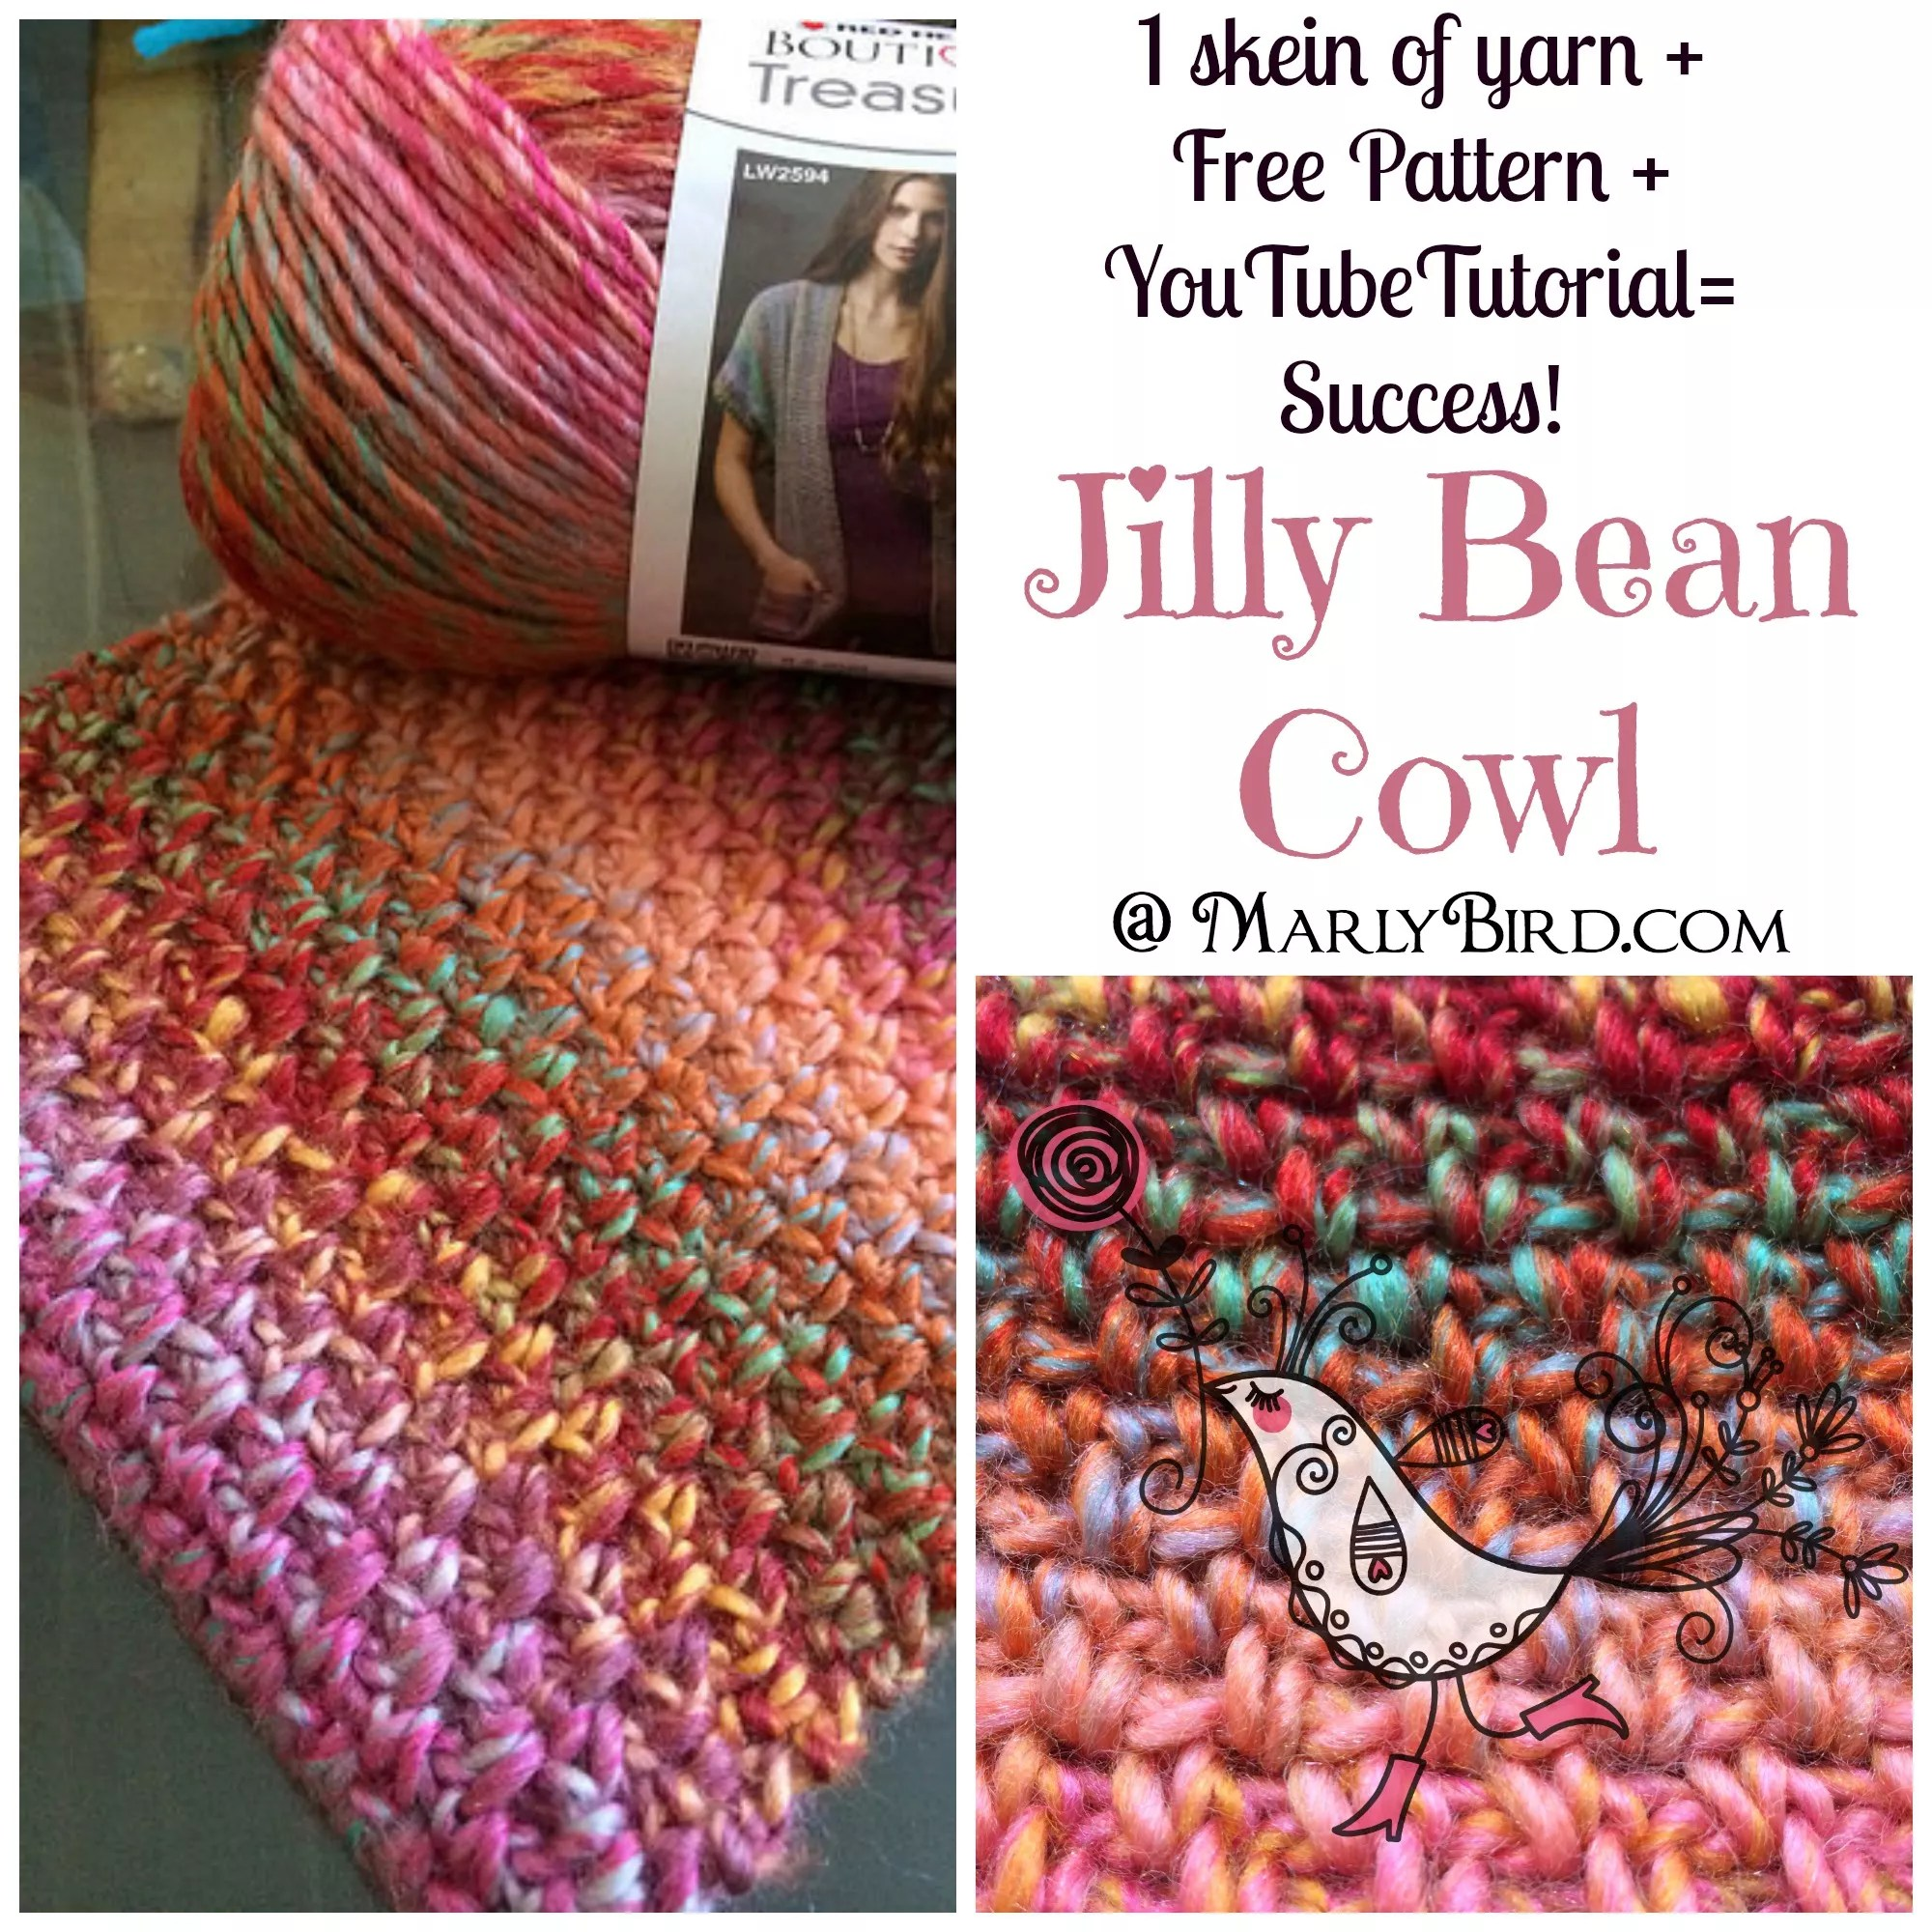 Jilly Bean Cowl Pattern by Marly Bird. Available at www.MarlyBird.com